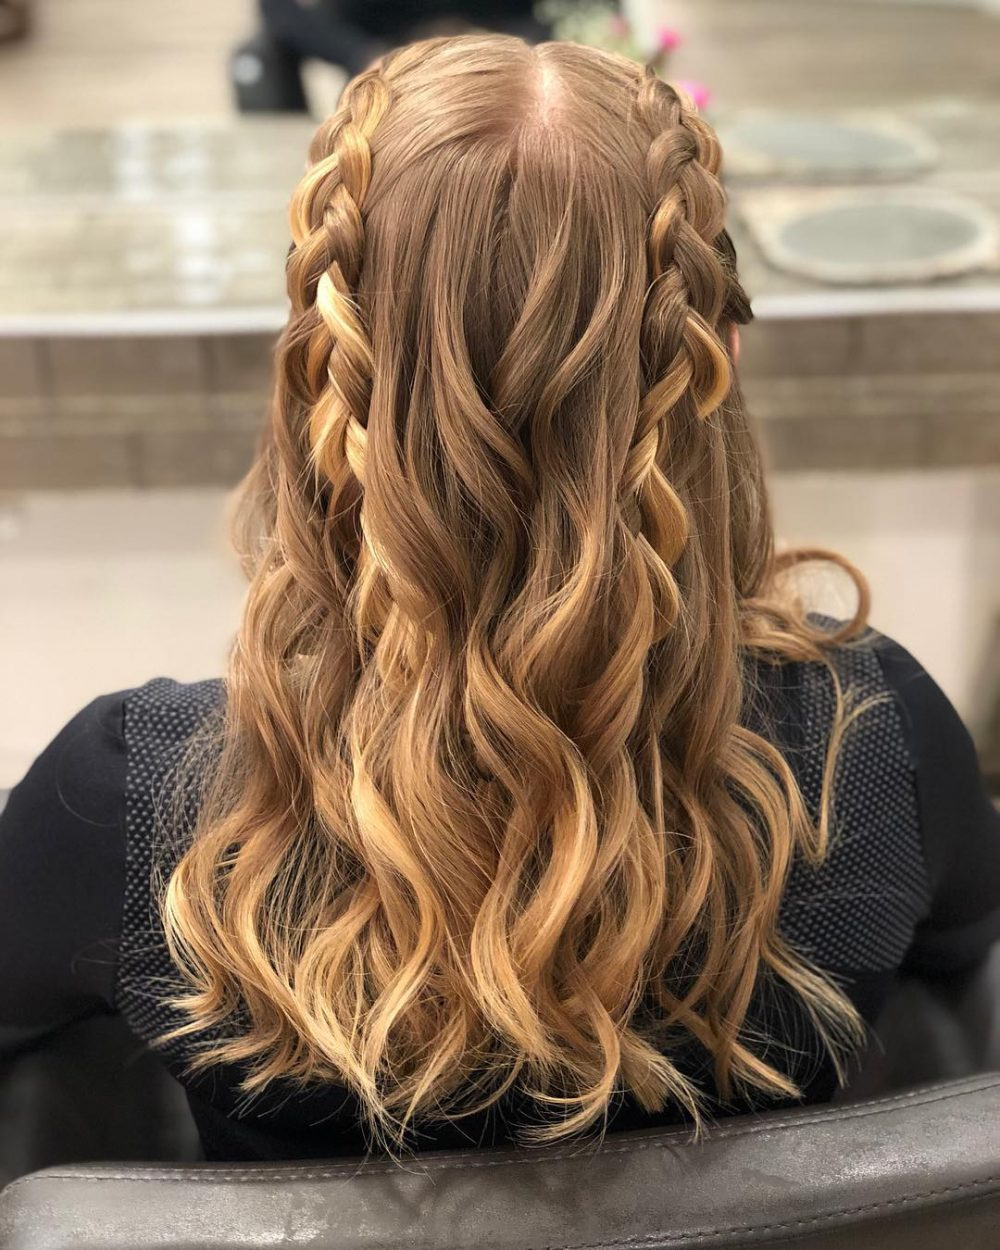 Simple Hairstyle For Wedding Dinner: 50 Party Hairstyles That Are Fun & Chic (Updated For 2018